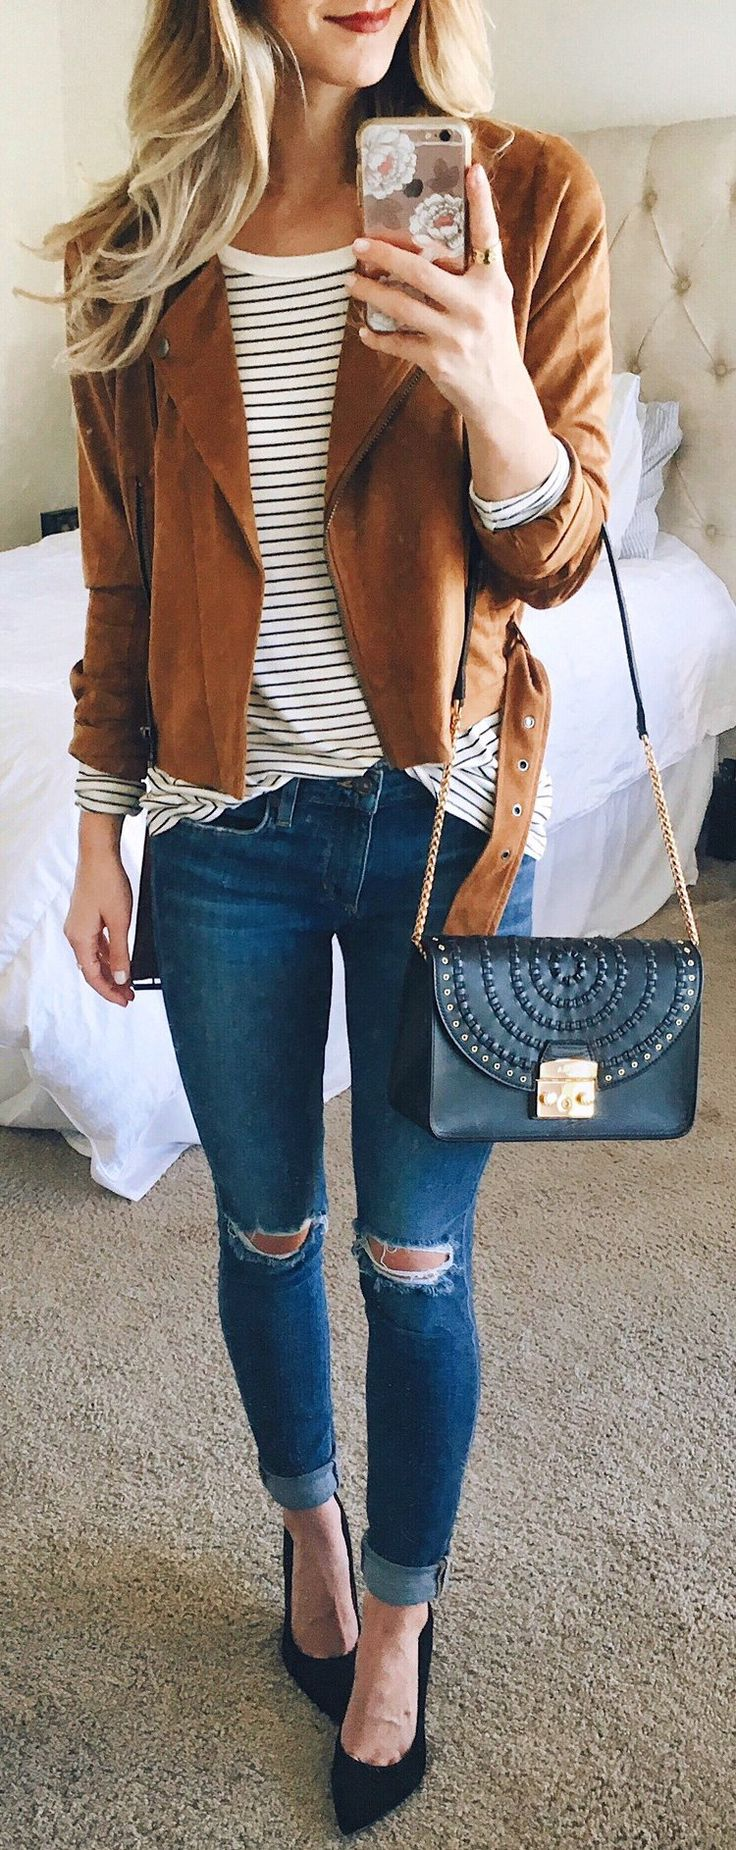 #spring #fashion /  Brown Leather Jacket / Destroyed Skinny Jeans / Black Leather Shoulder Bag / Striped Top / Black Pumps